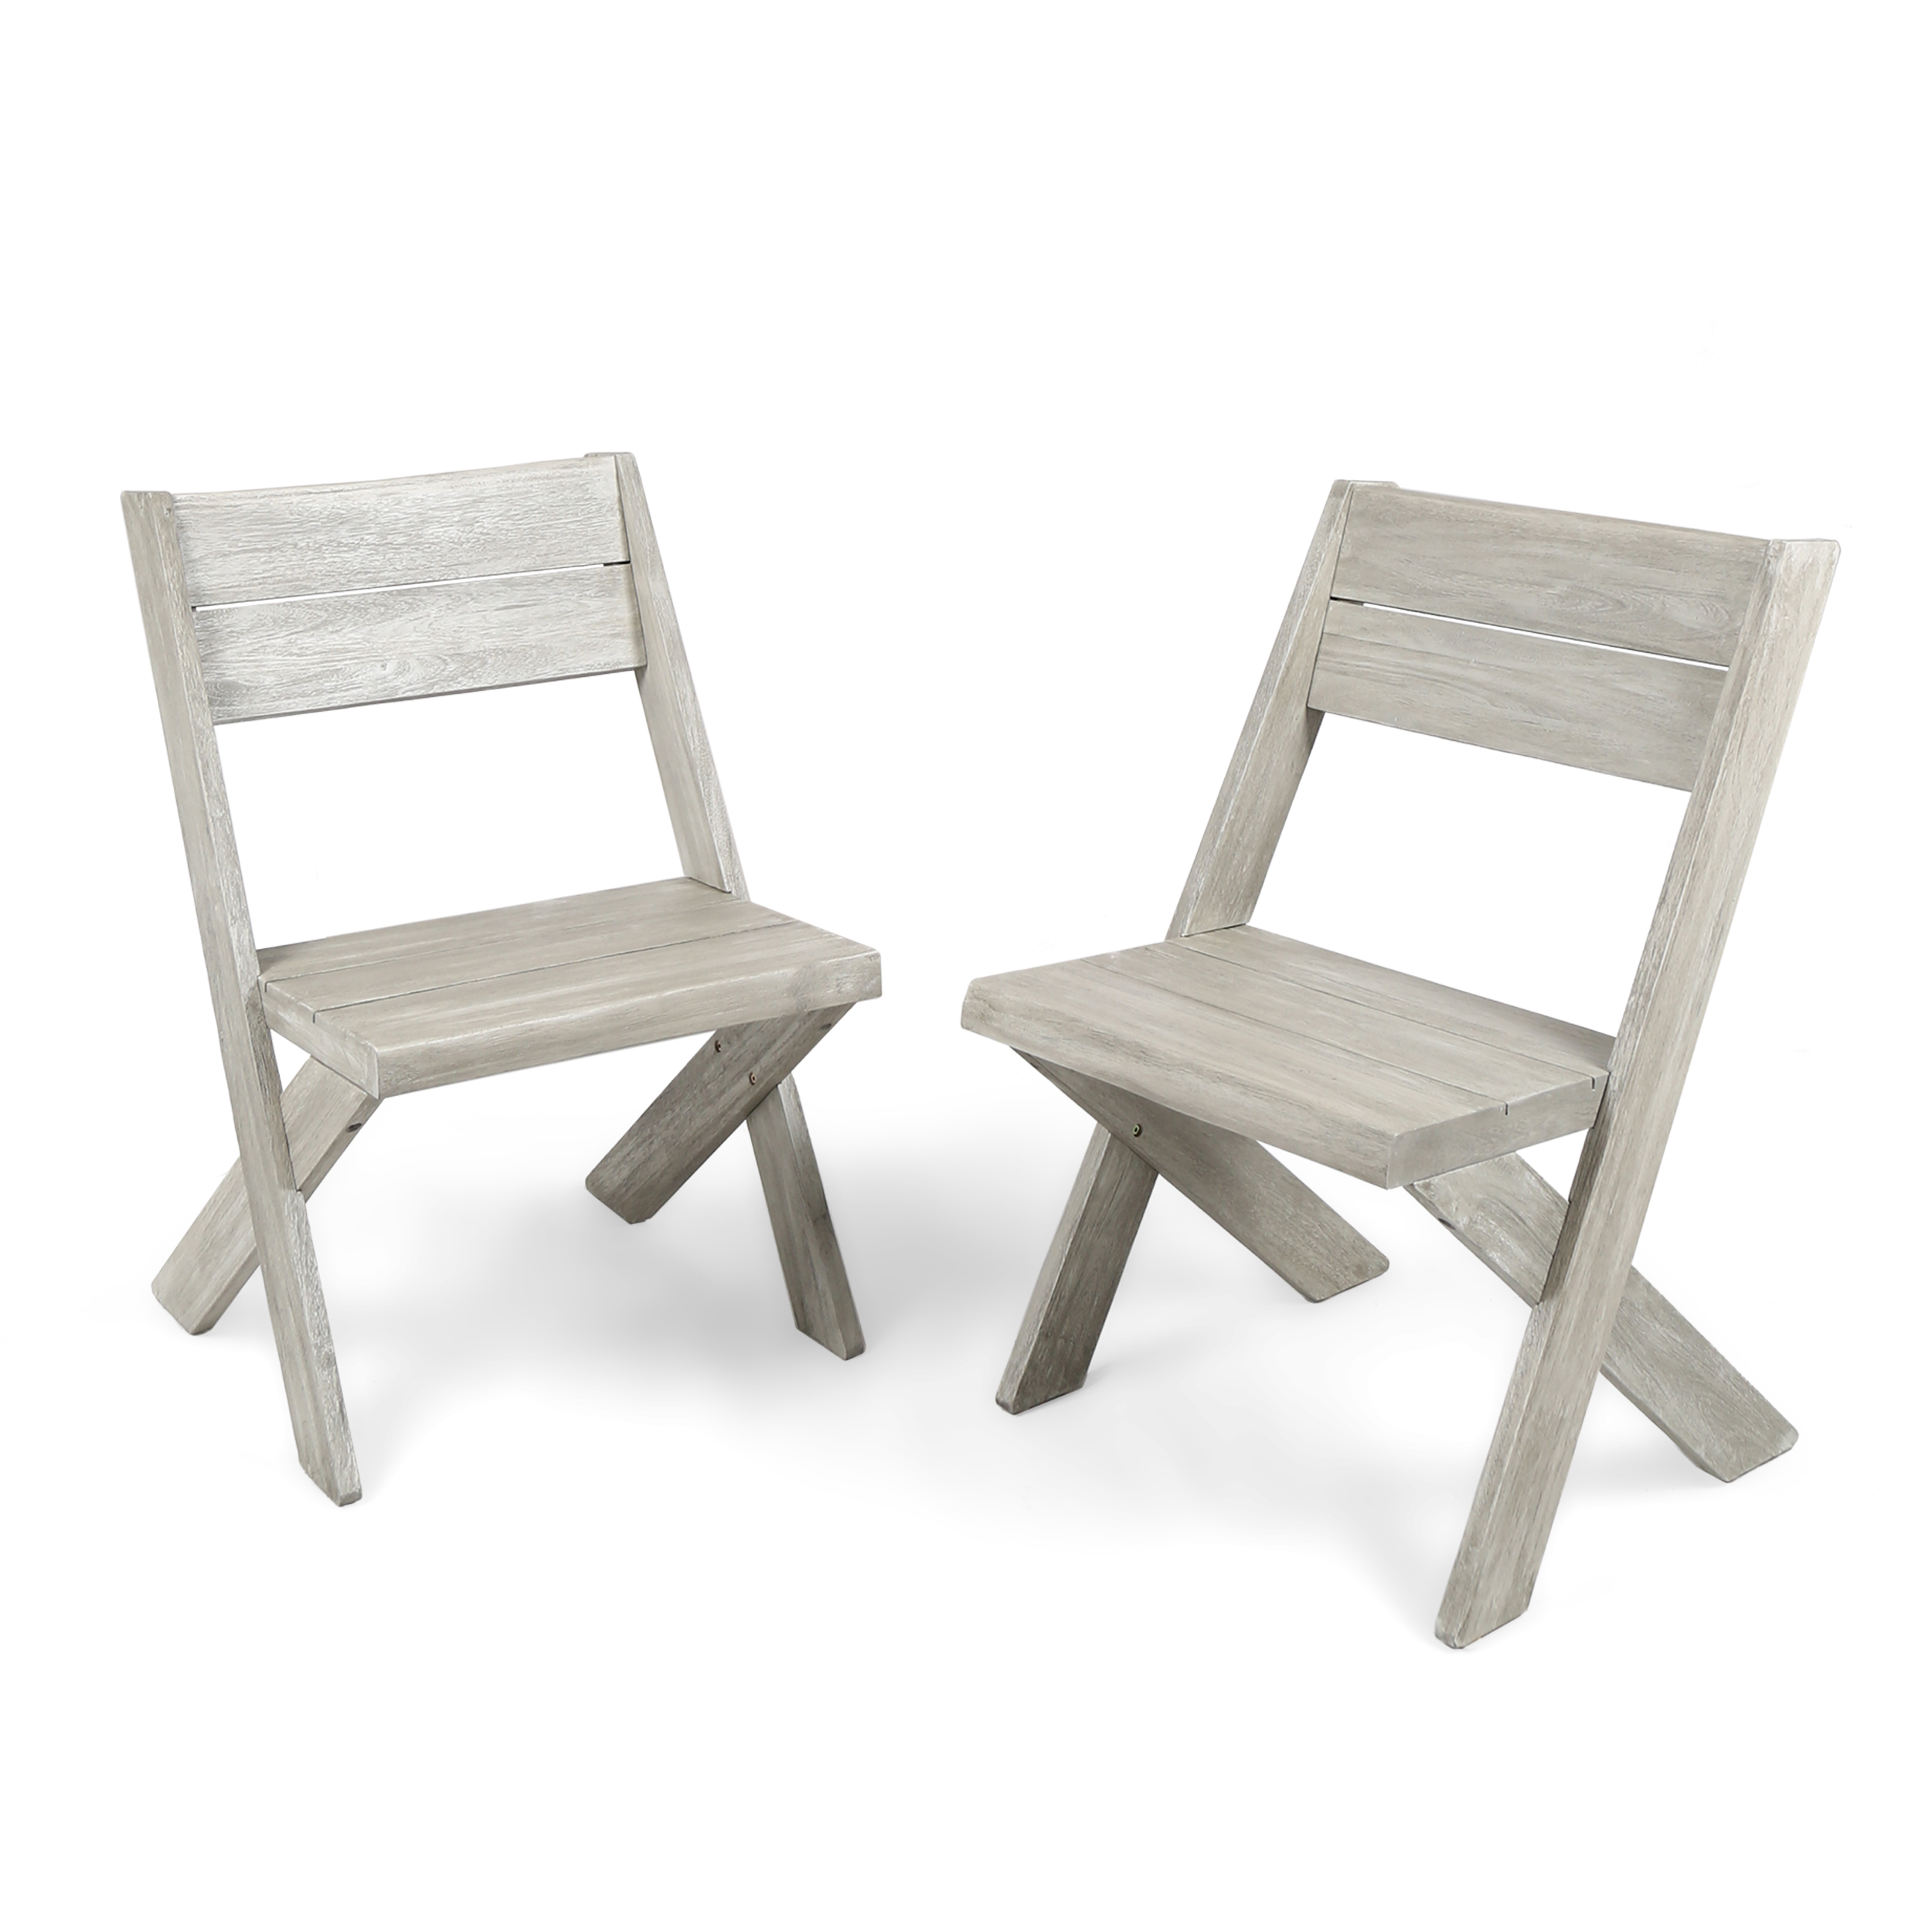 Emmy Outdoor Acacia Wood Chairs, Set of 2, Light Grey